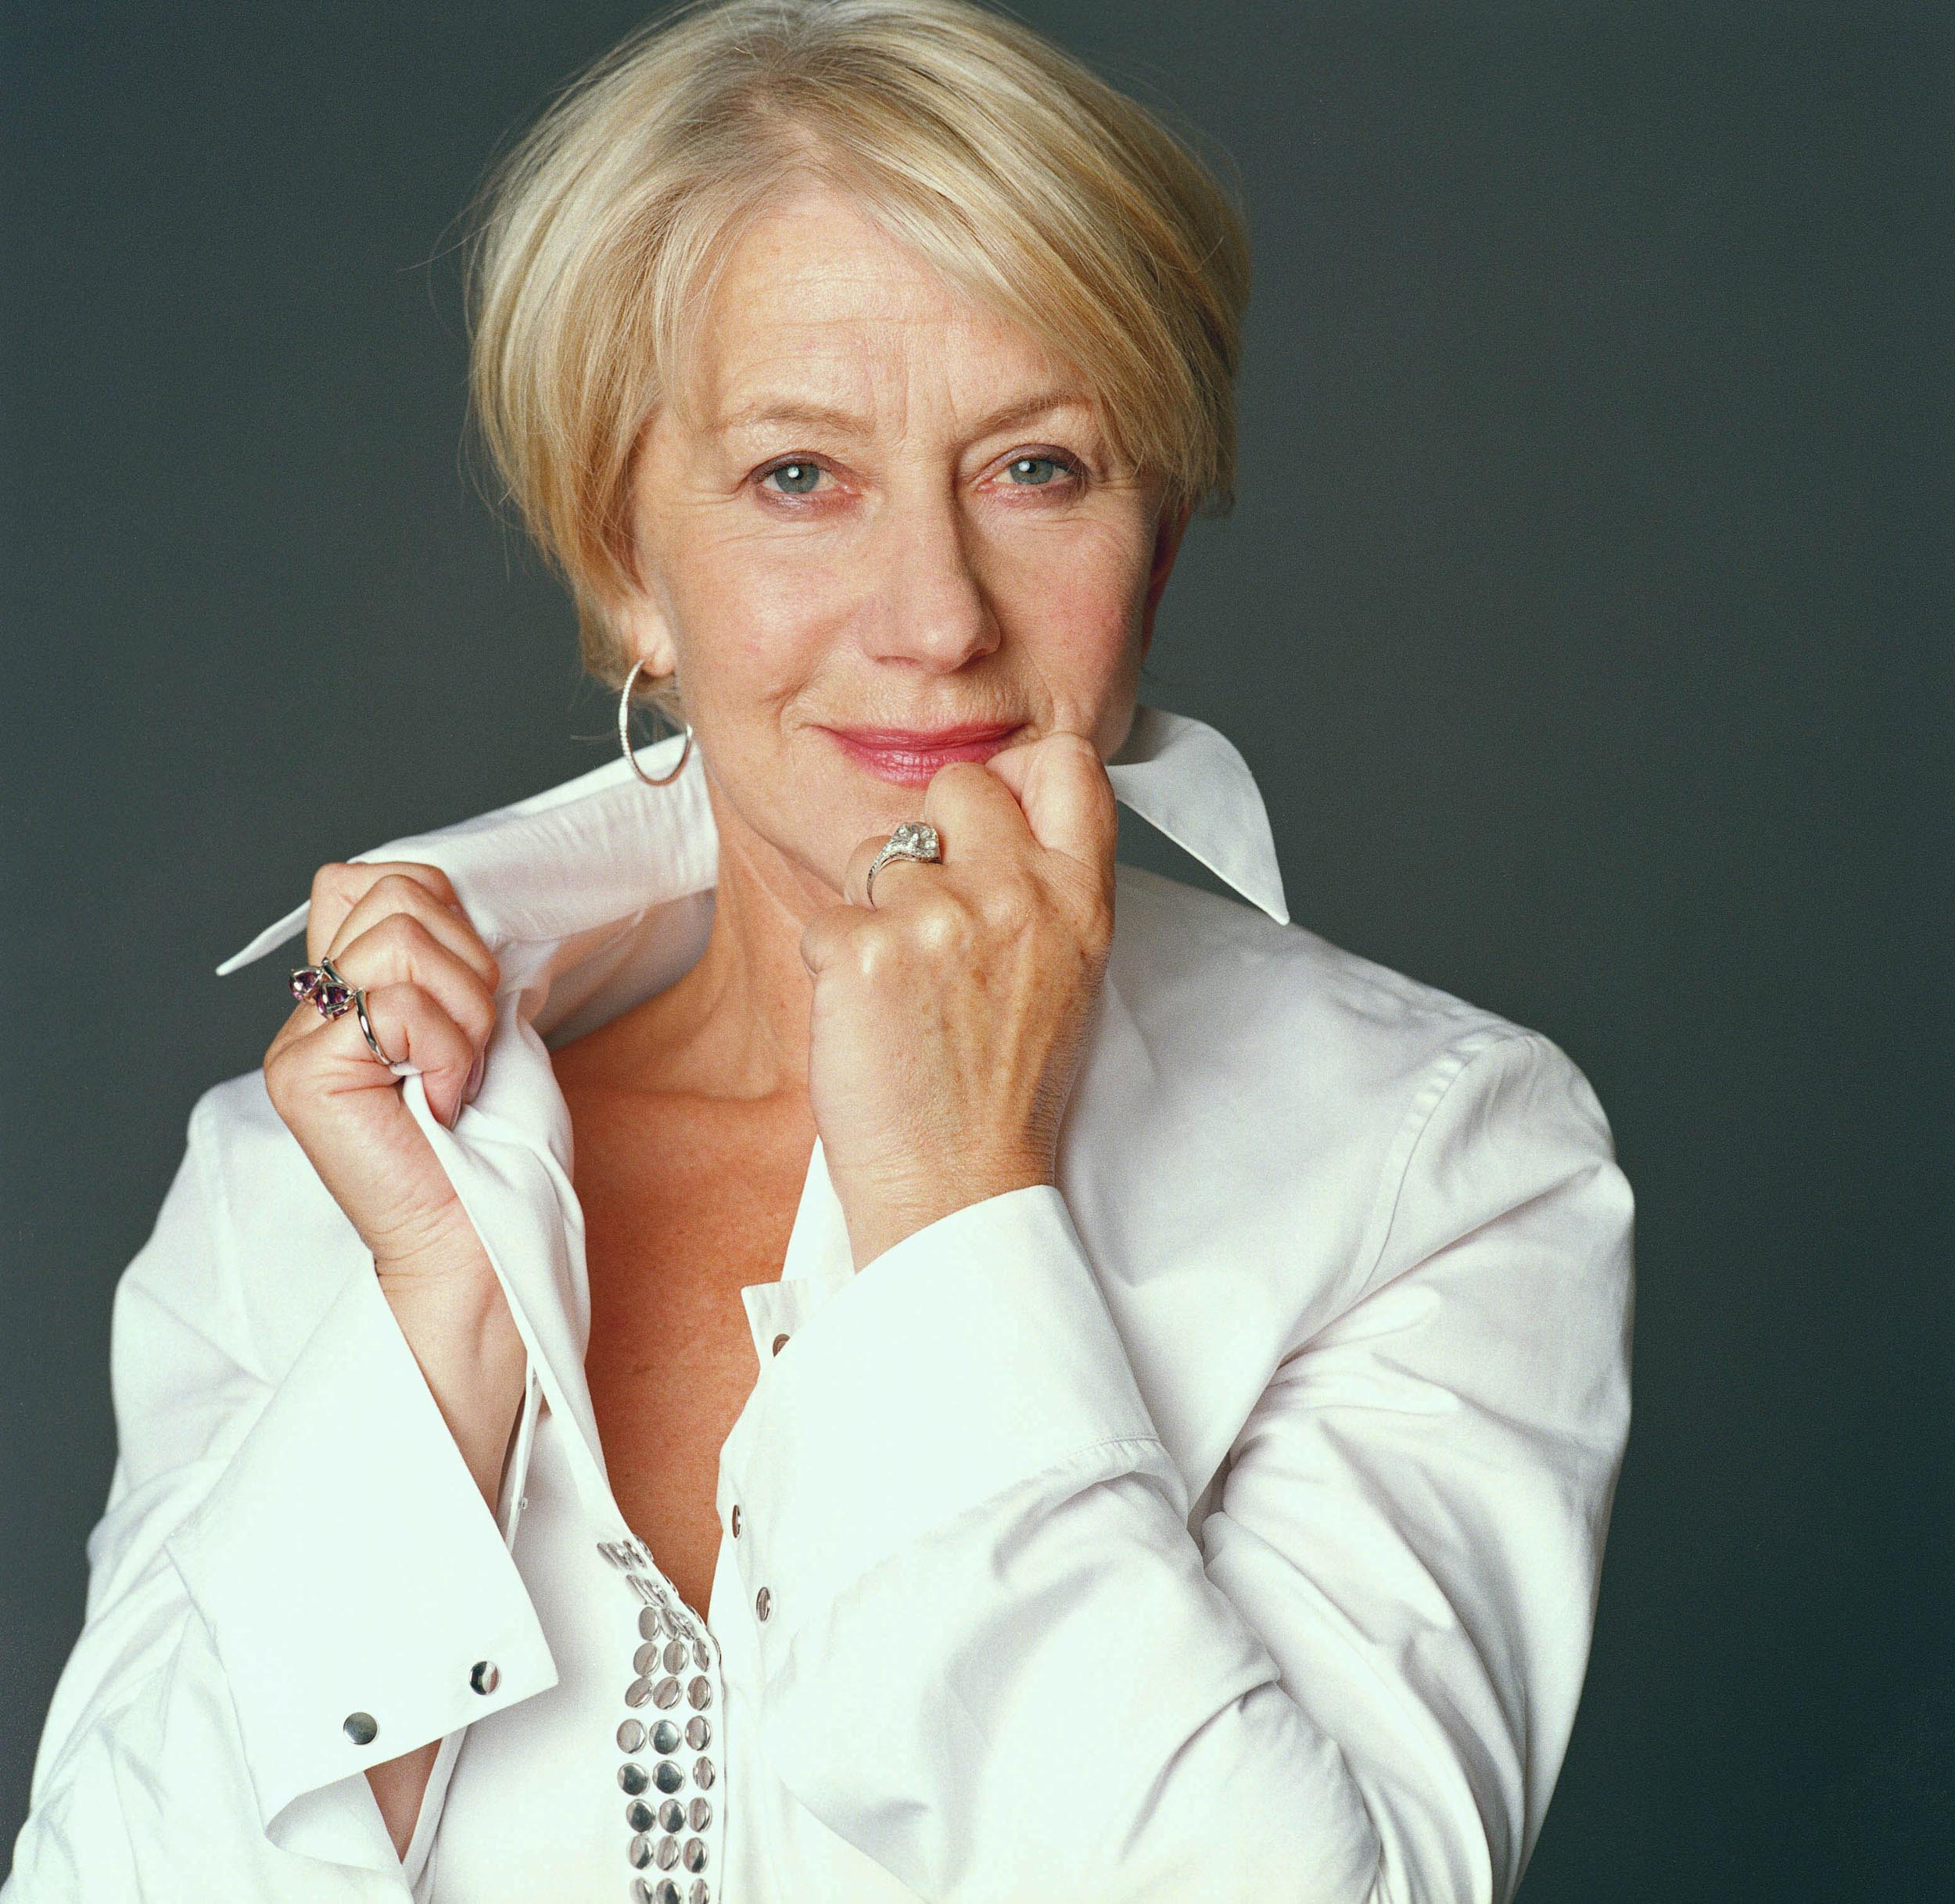 Helen Mirren Images Helen Mirren Hd Wallpaper And Background Photos 32853518